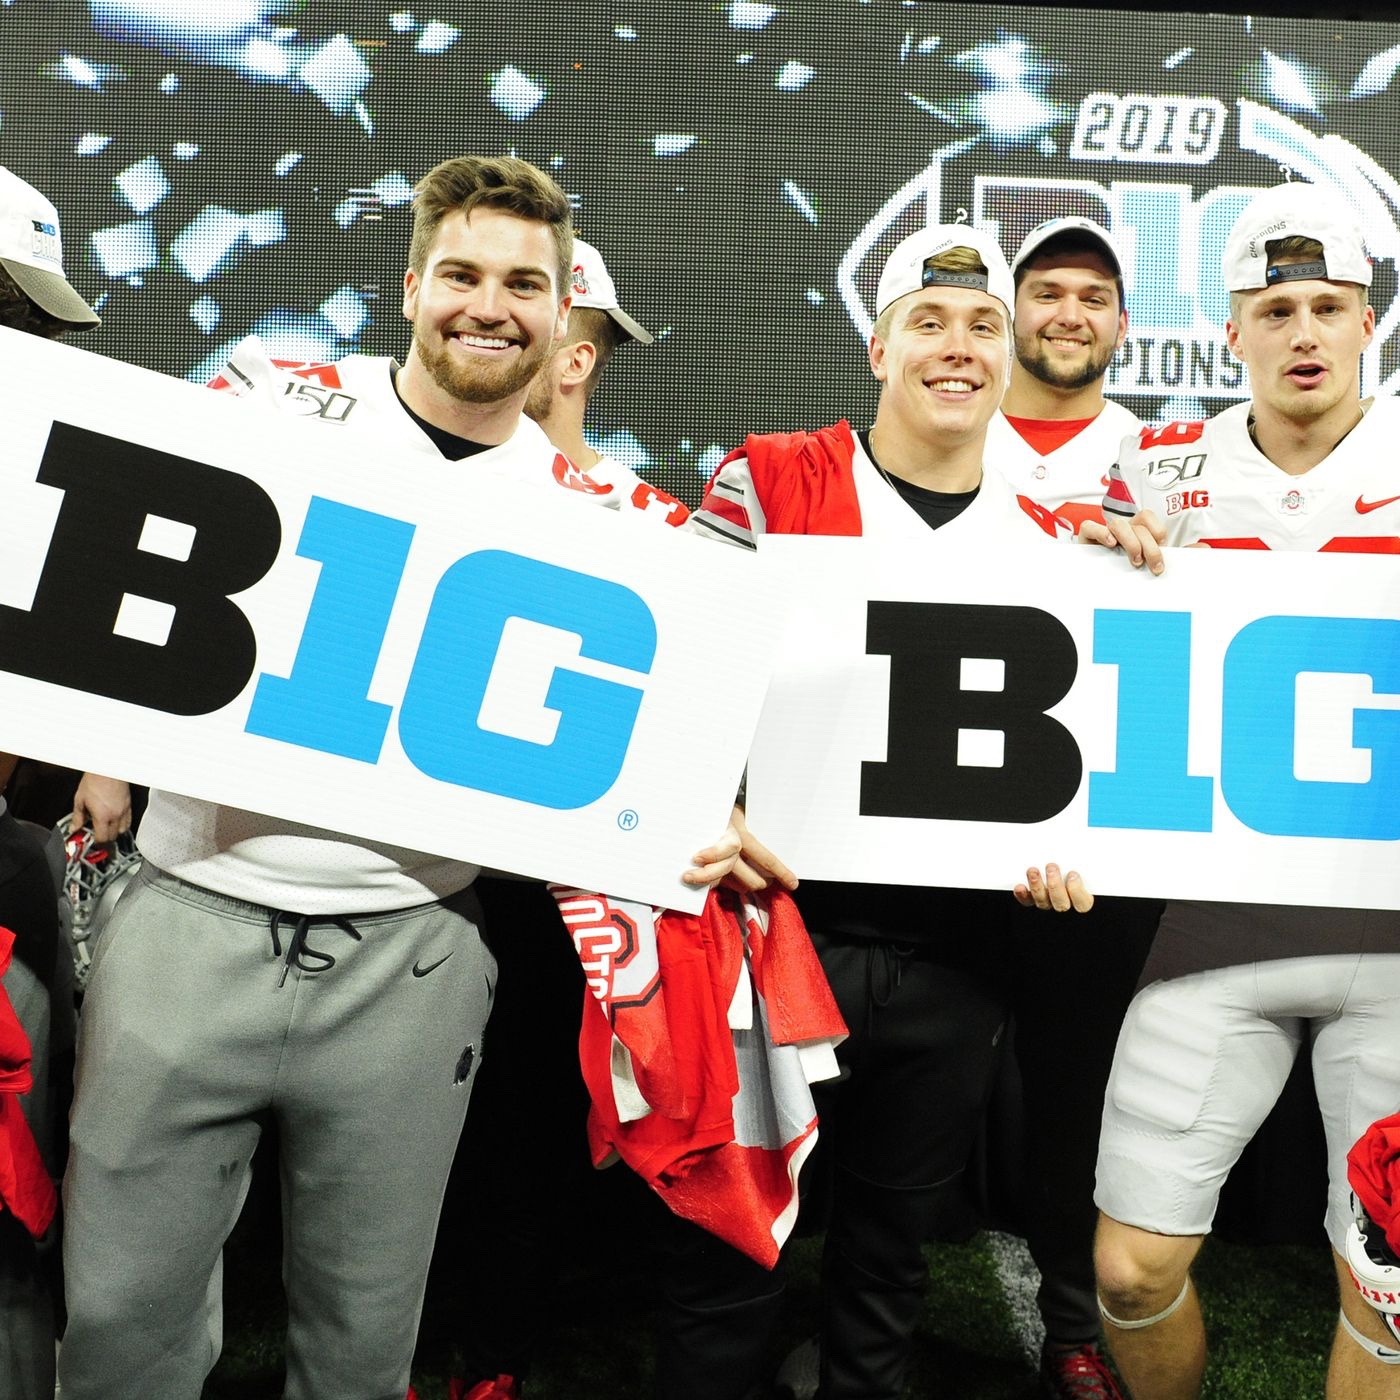 BREAKING: Big Ten Will Play Conference Only Games